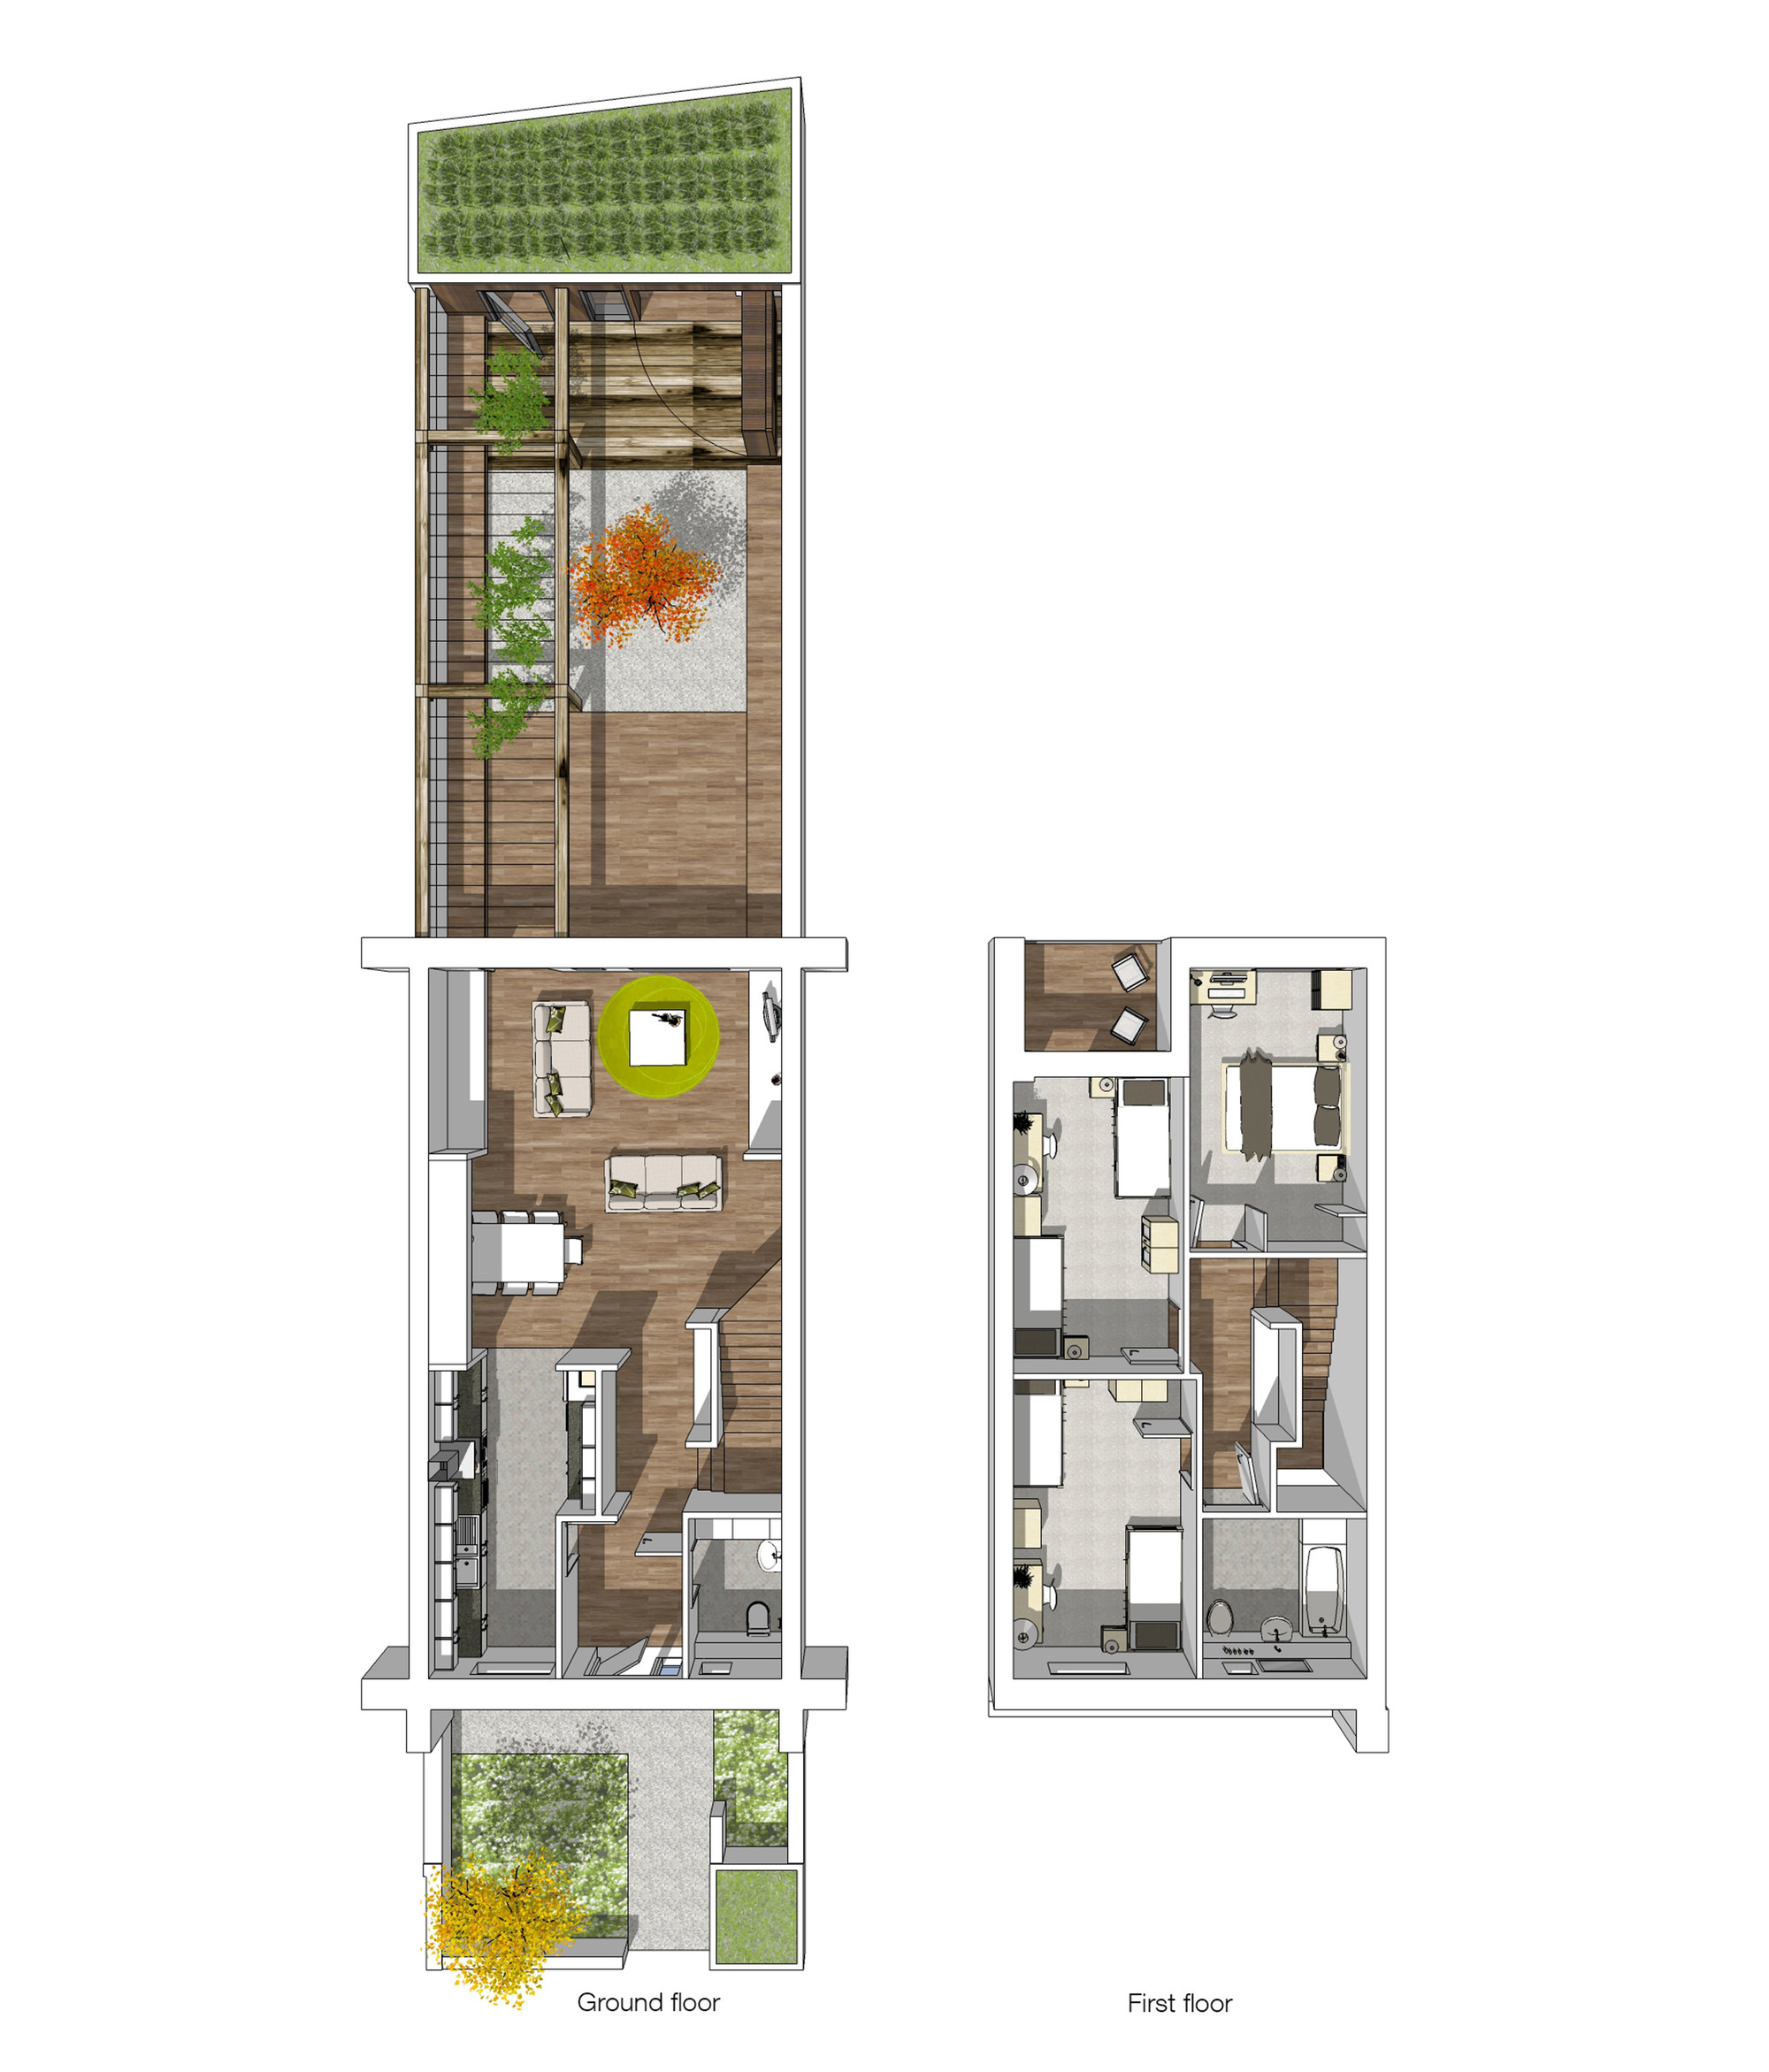 plans for duplex homes anelti com nice plans for duplex homes 1 duplex floor plans jpg 1424997904